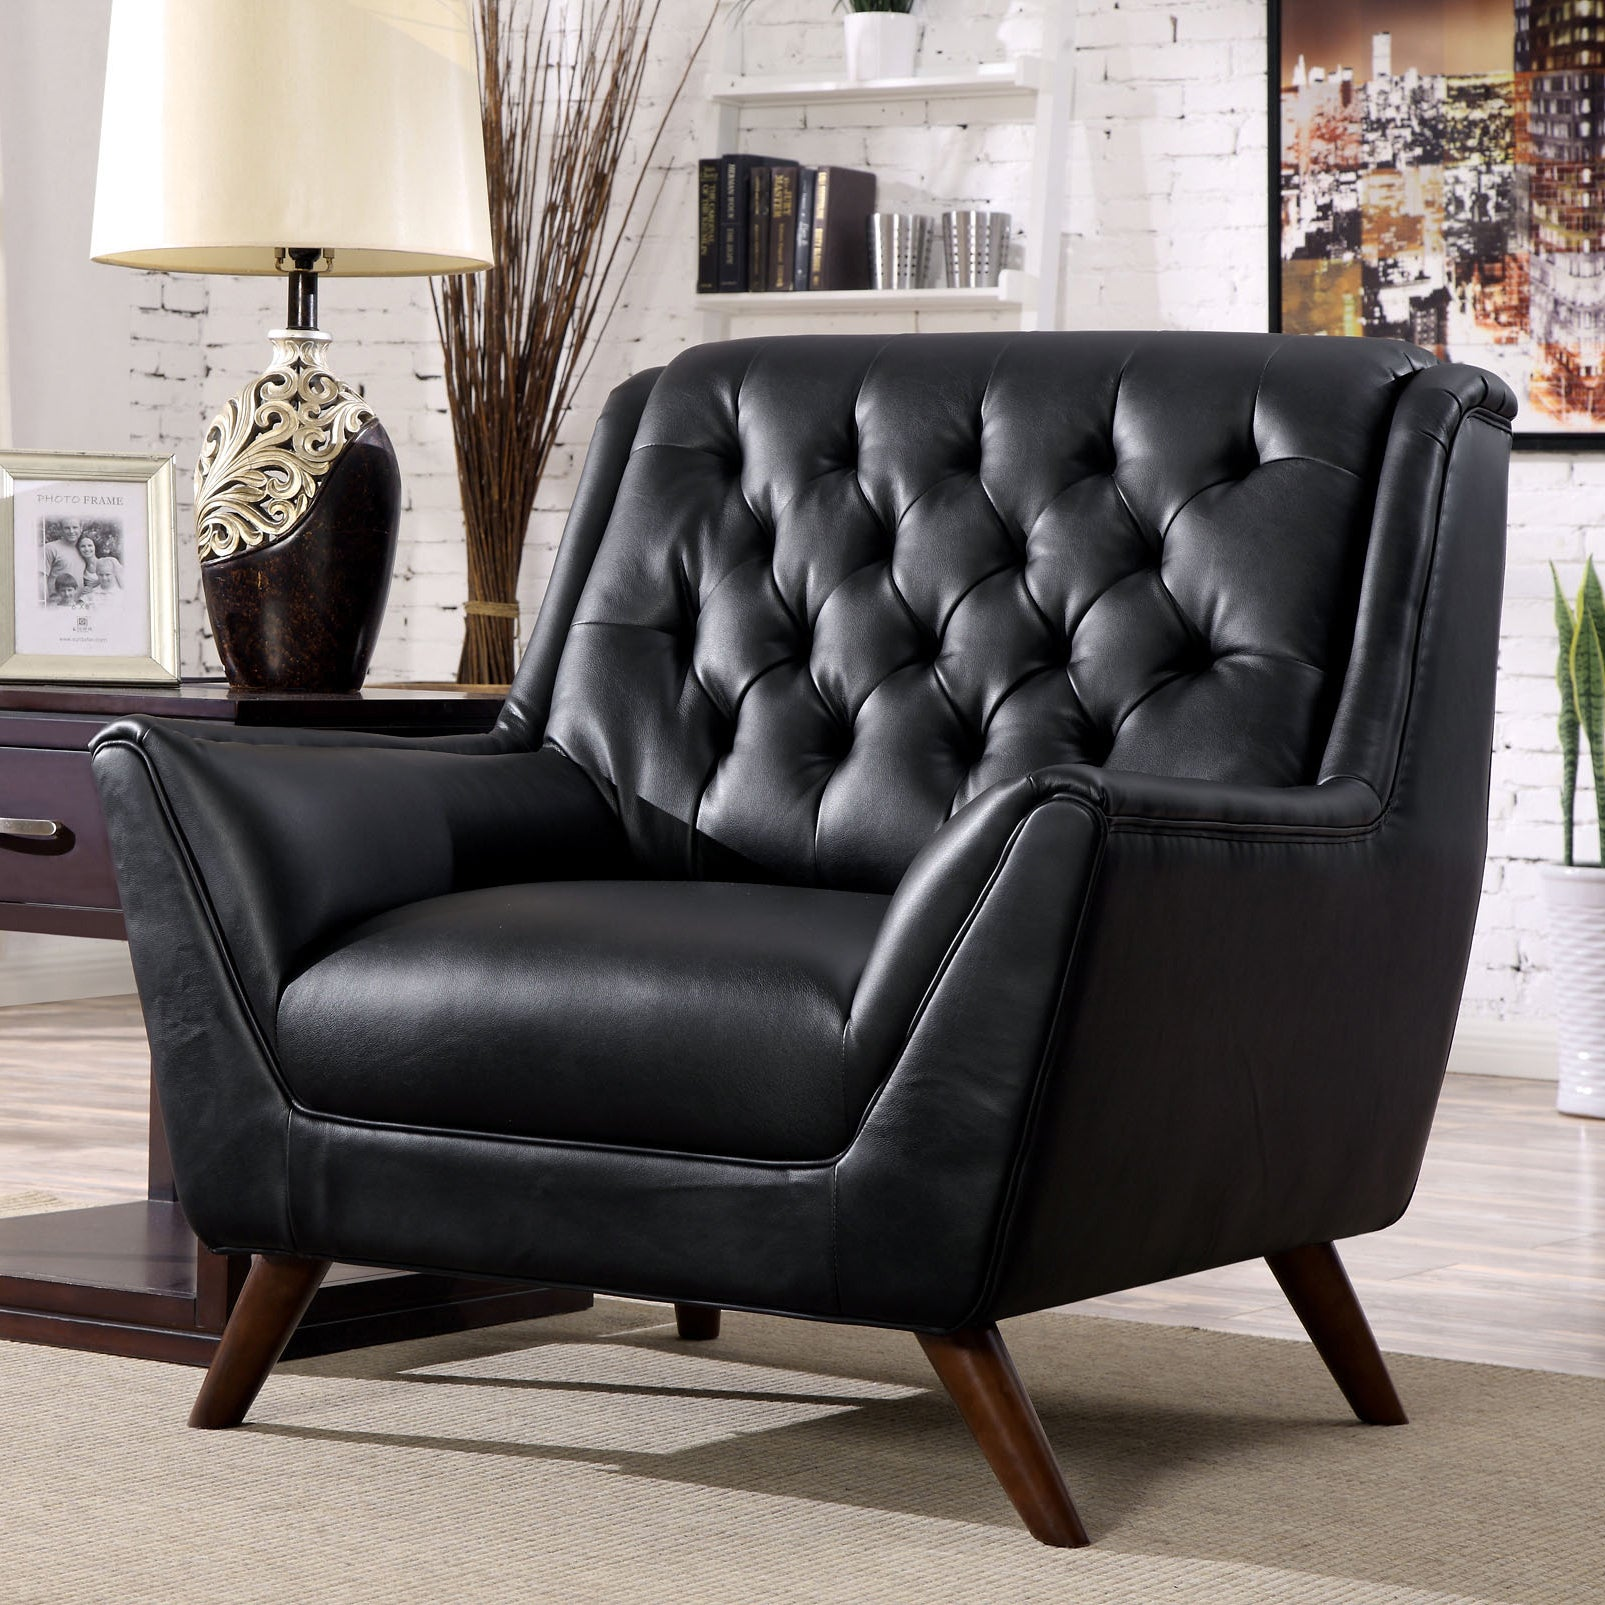 Shop Furniture Of America Valentino 3 Piece Mid Century Modern Bonded  Leather Sofa Set   On Sale   Free Shipping Today   Overstock.com   9762571